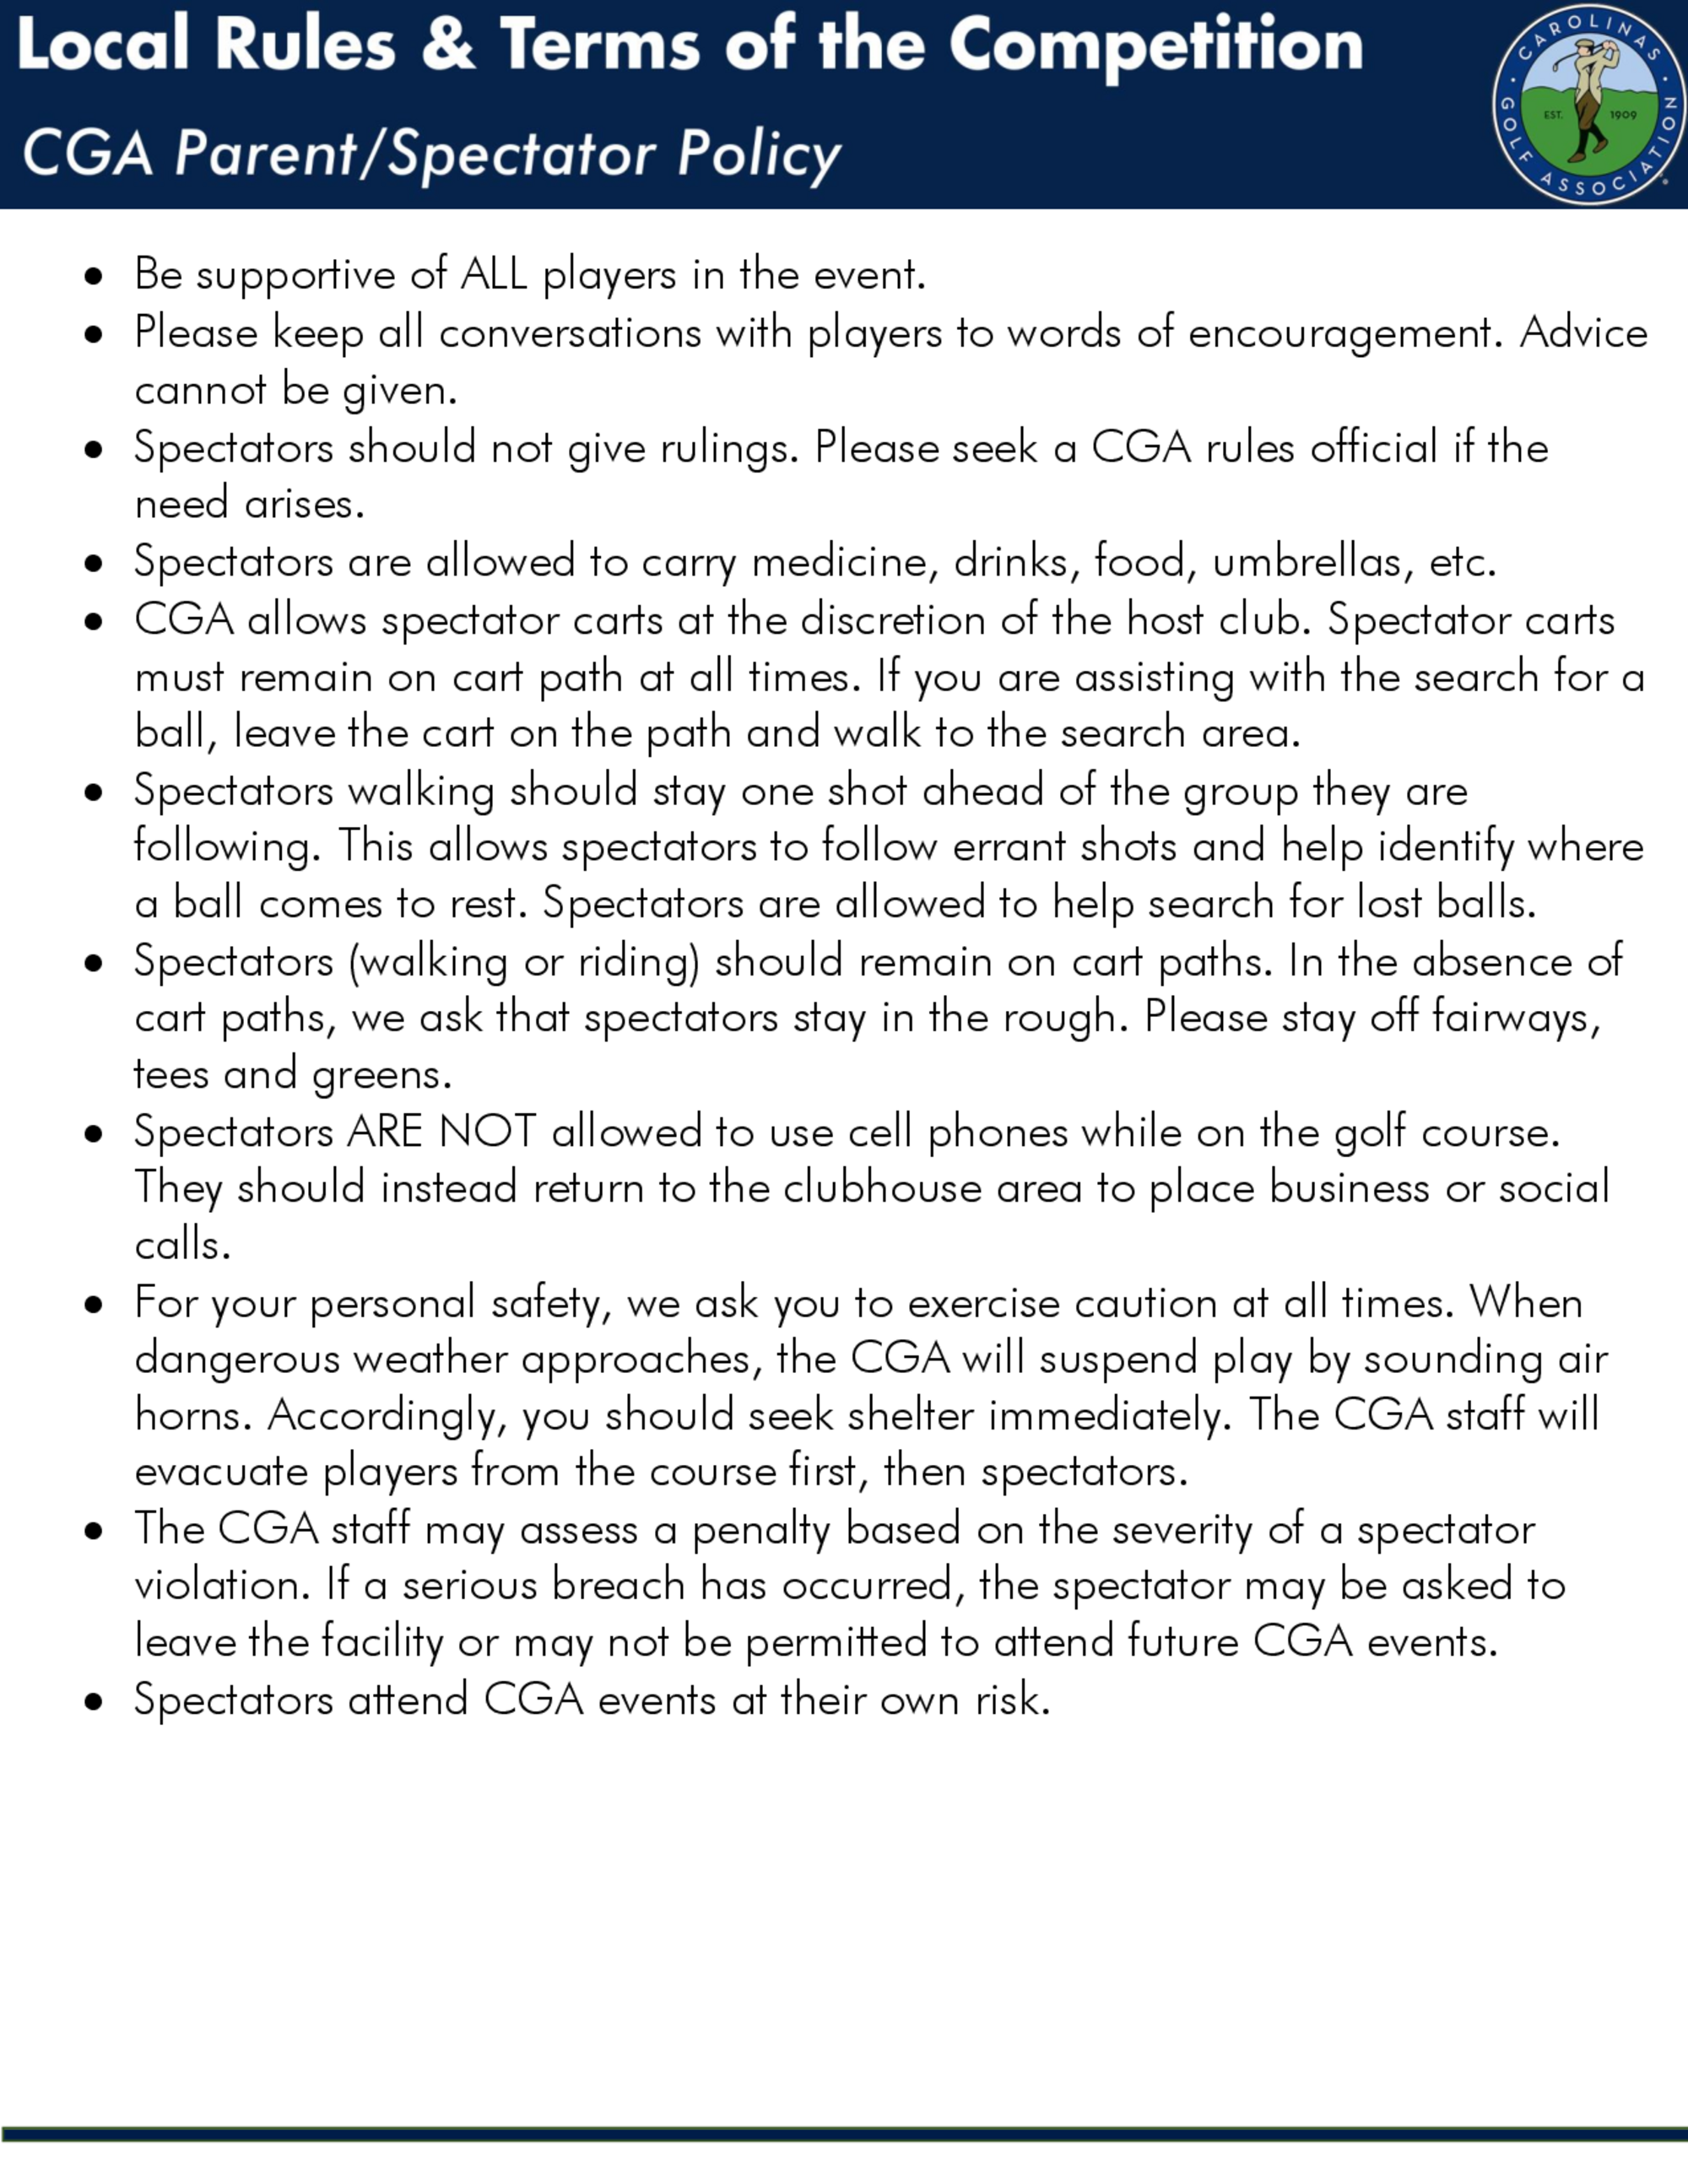 Cga parent policy 1